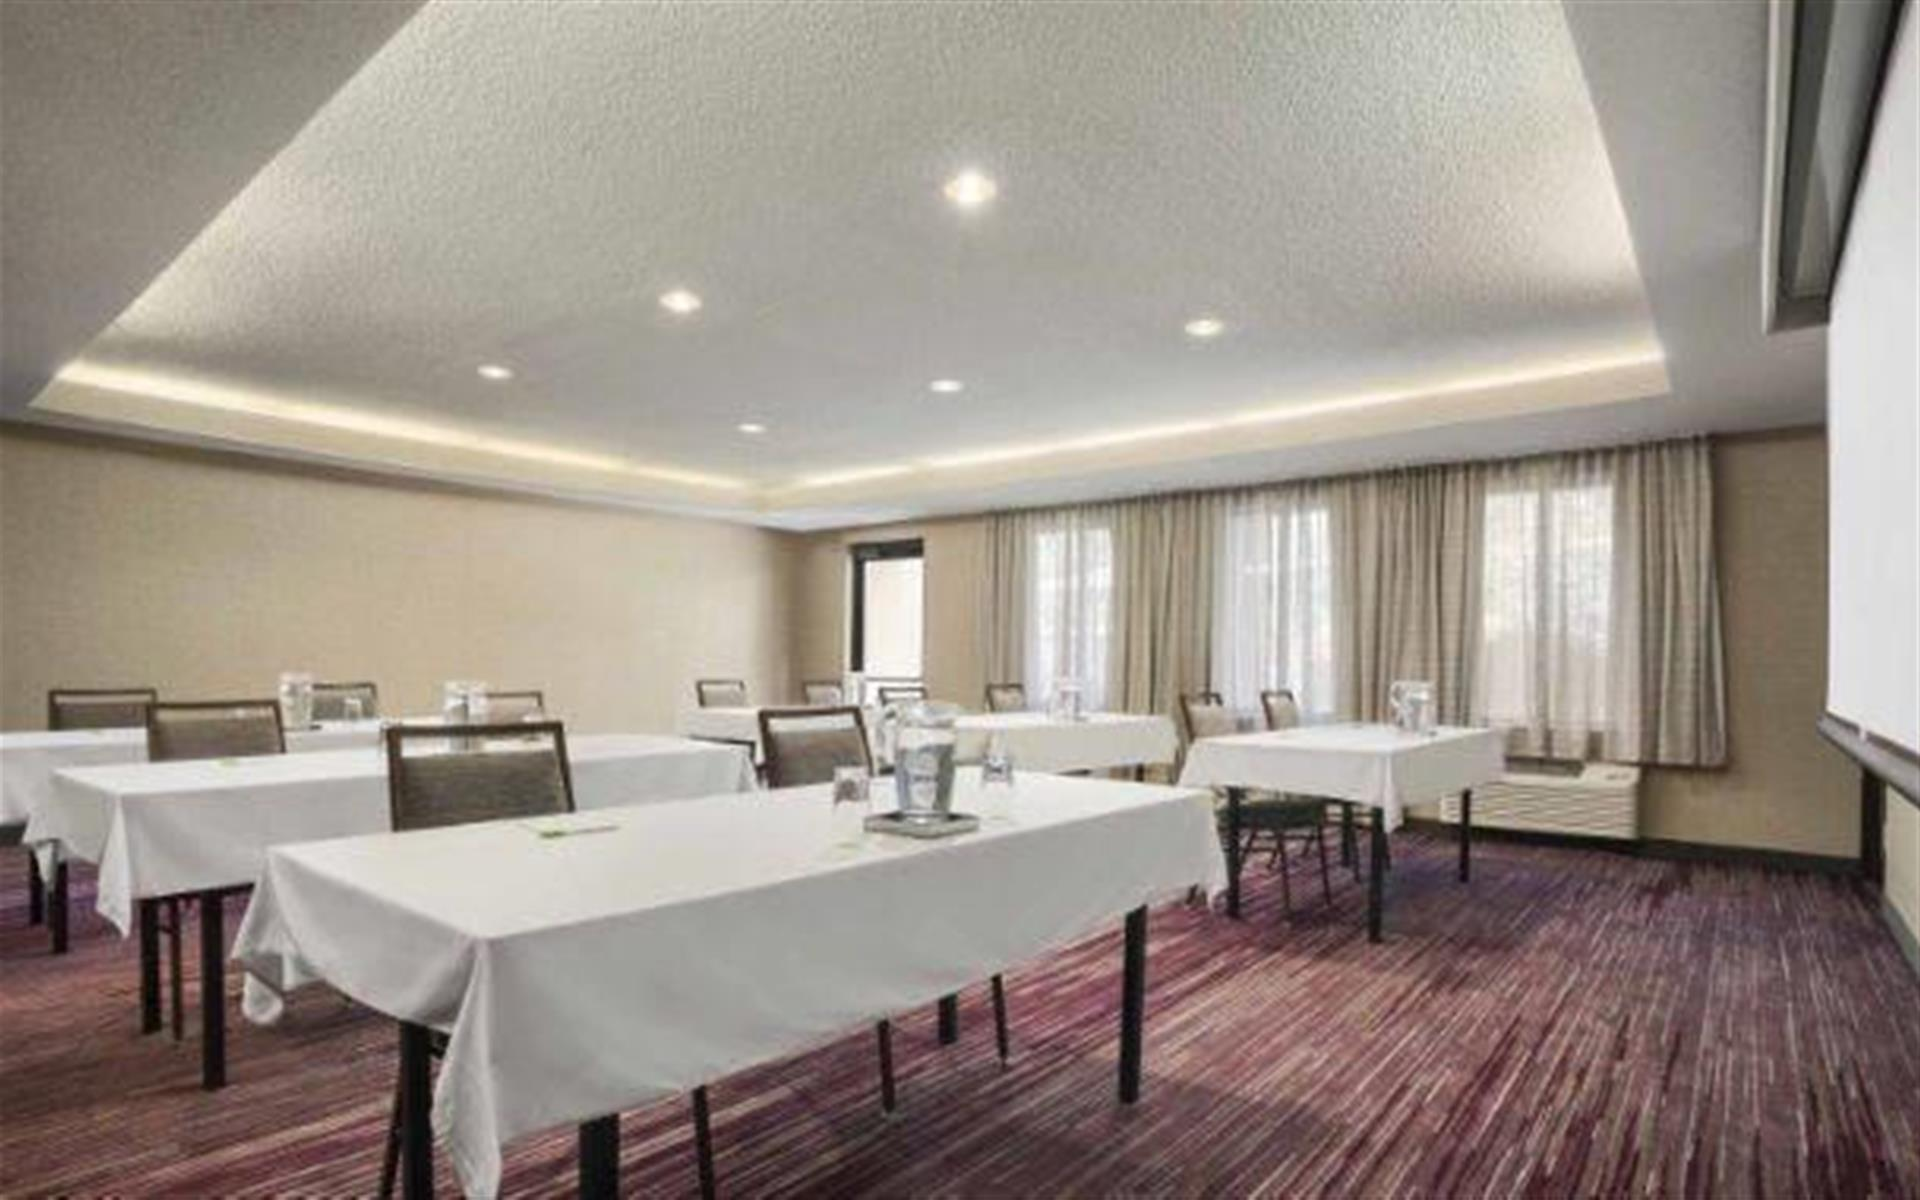 Springfield Courtyard by Marriott - Renovated Meeting Room